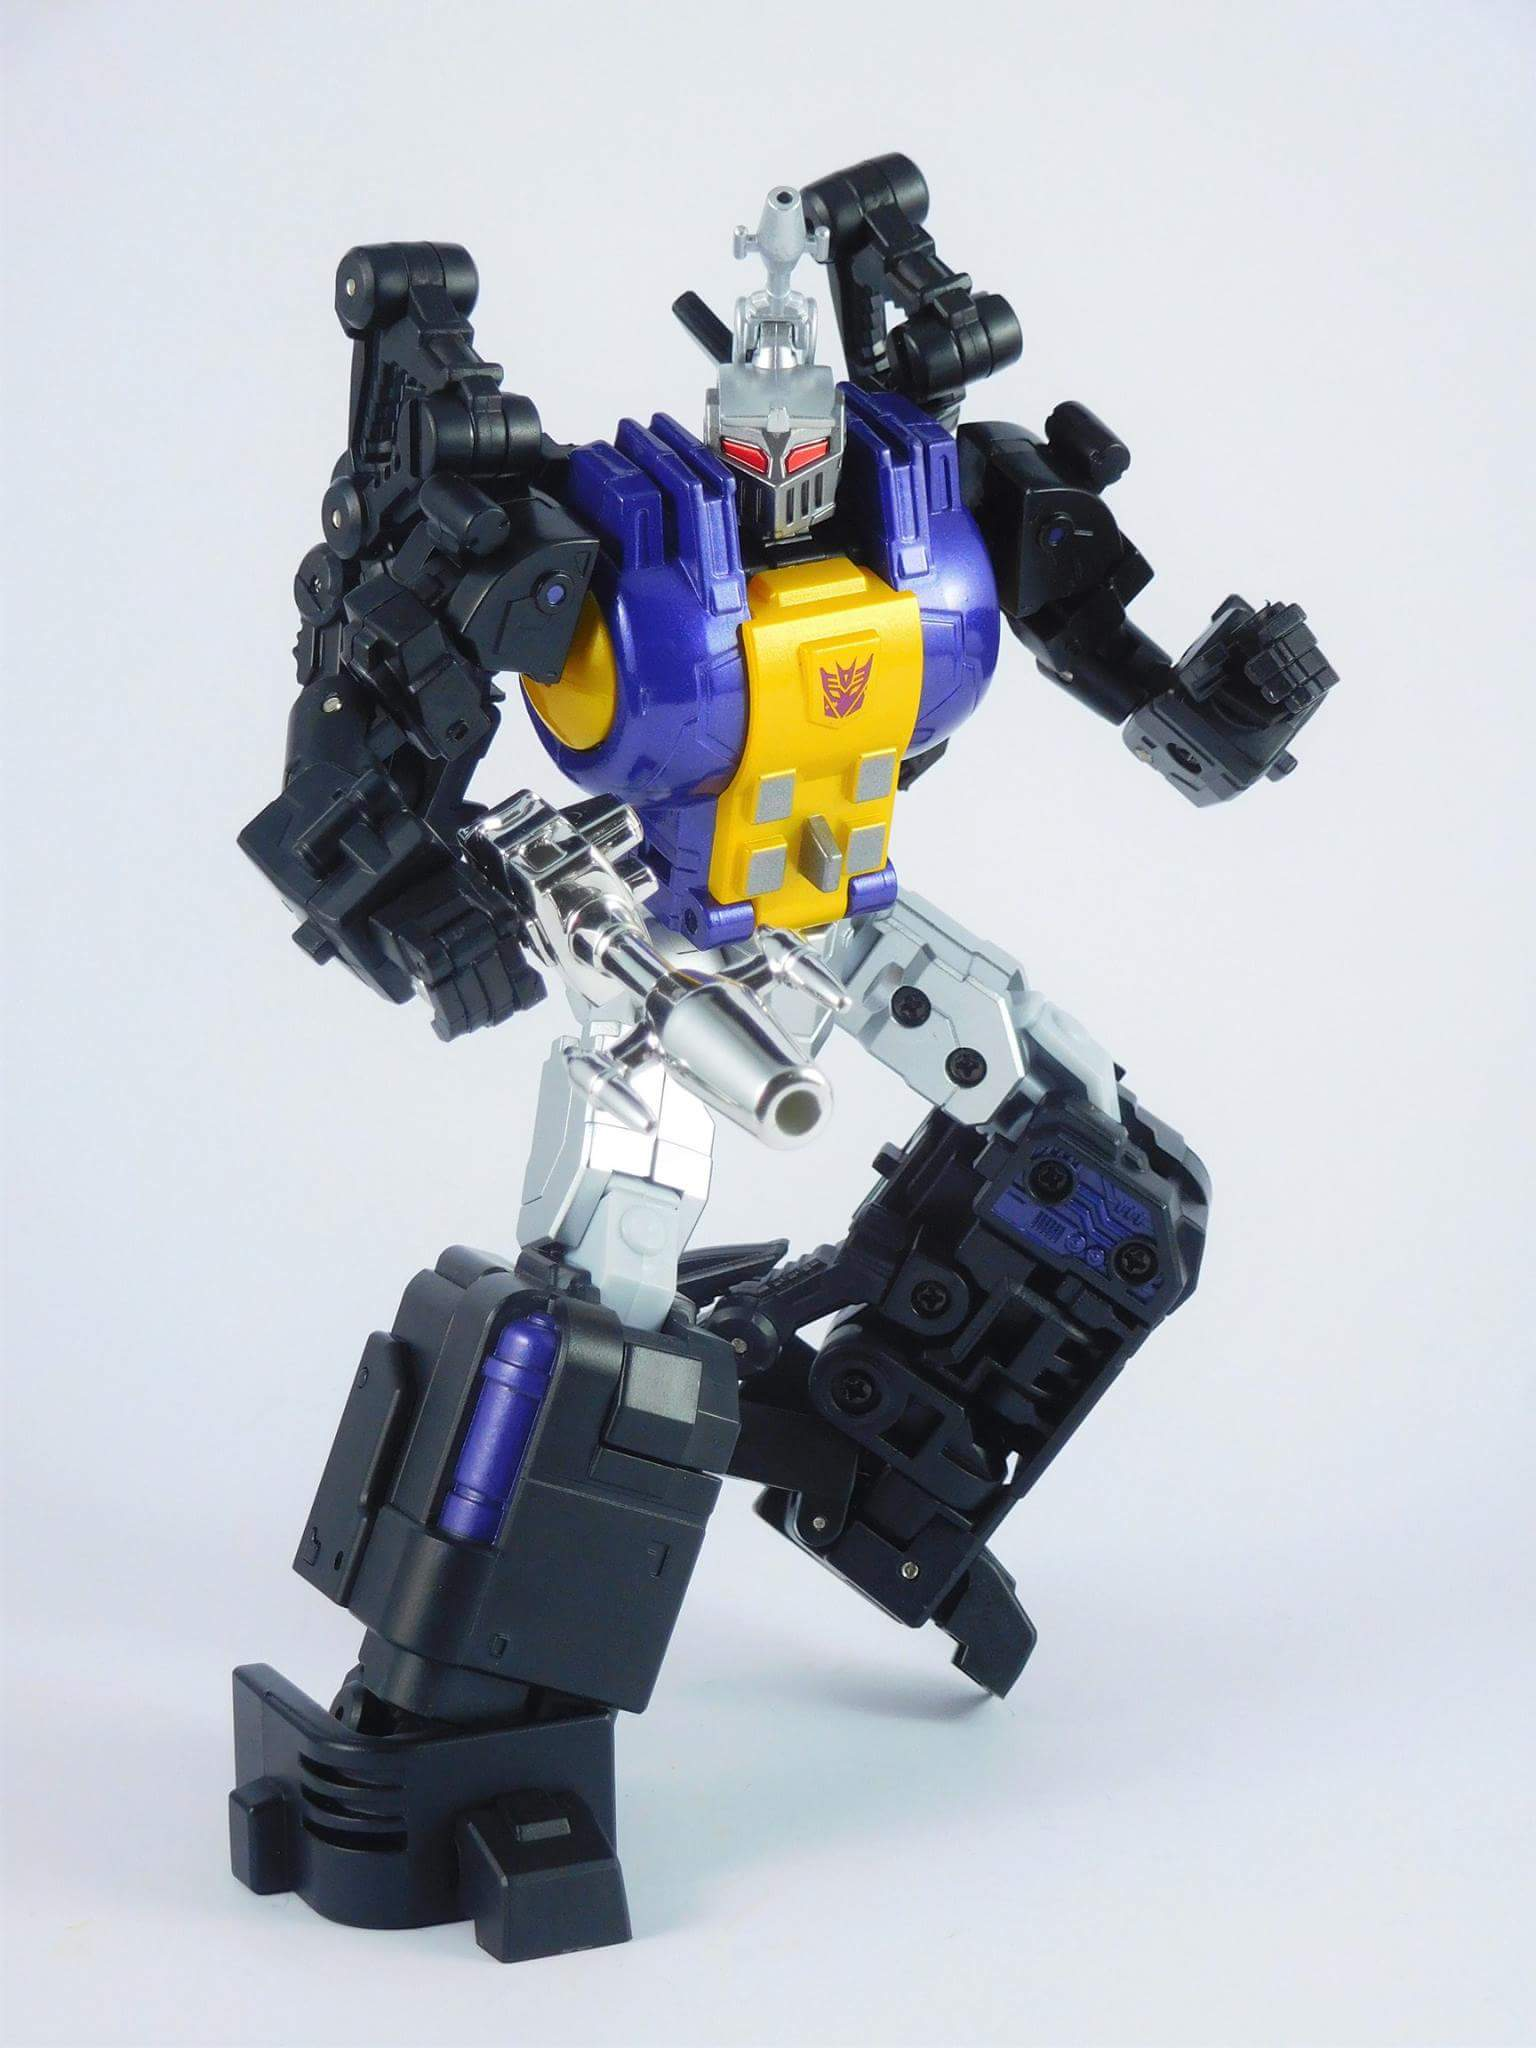 [Fanstoys] Produit Tiers - Jouet FT-12 Grenadier / FT-13 Mercenary / FT-14 Forager - aka Insecticons - Page 4 VquWB31t